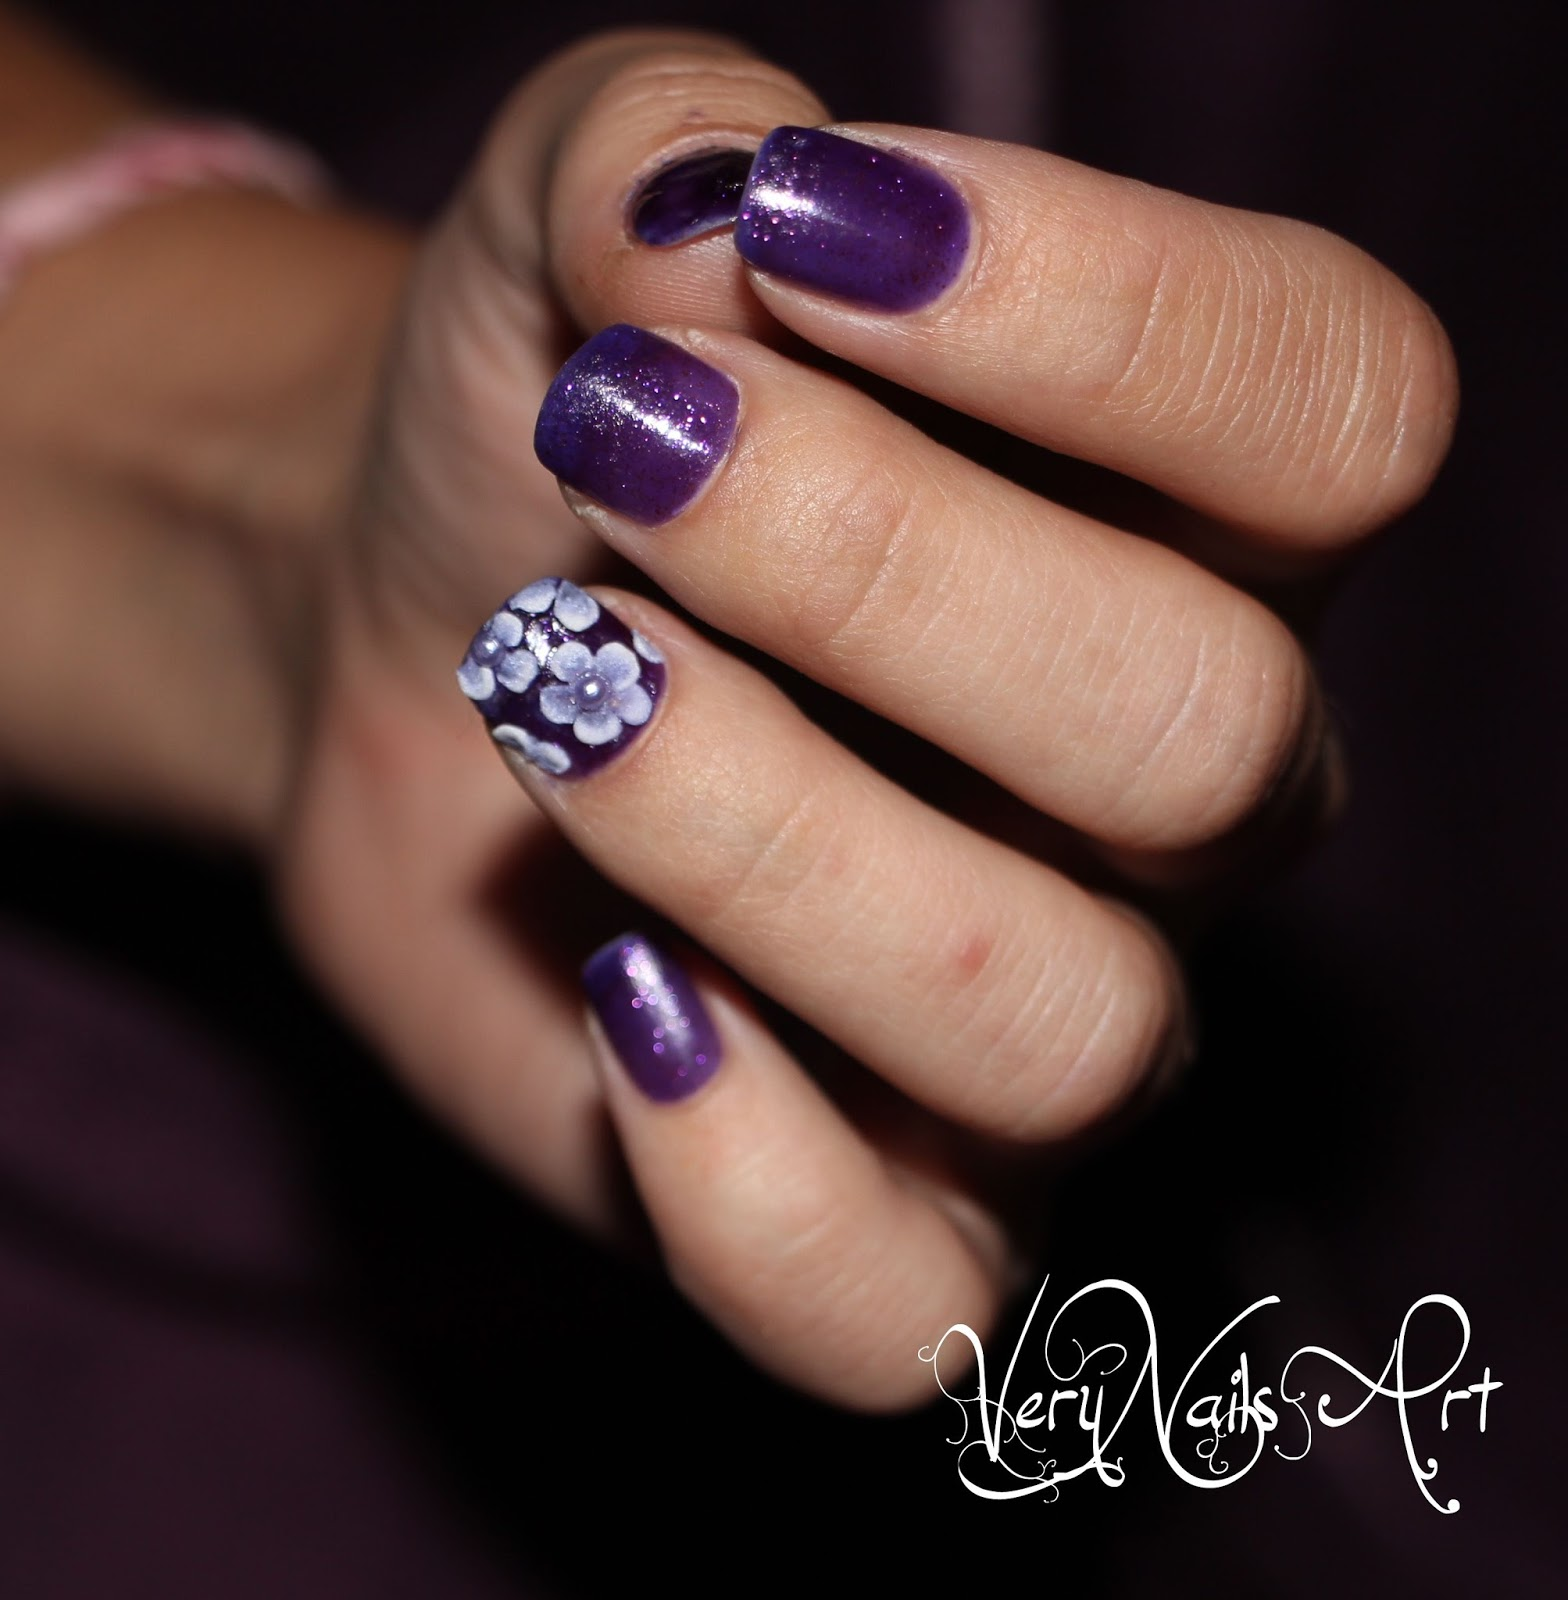 Decoraci n de u as con flores en 3d verynailsart blog for Unas de porcelana decoracion